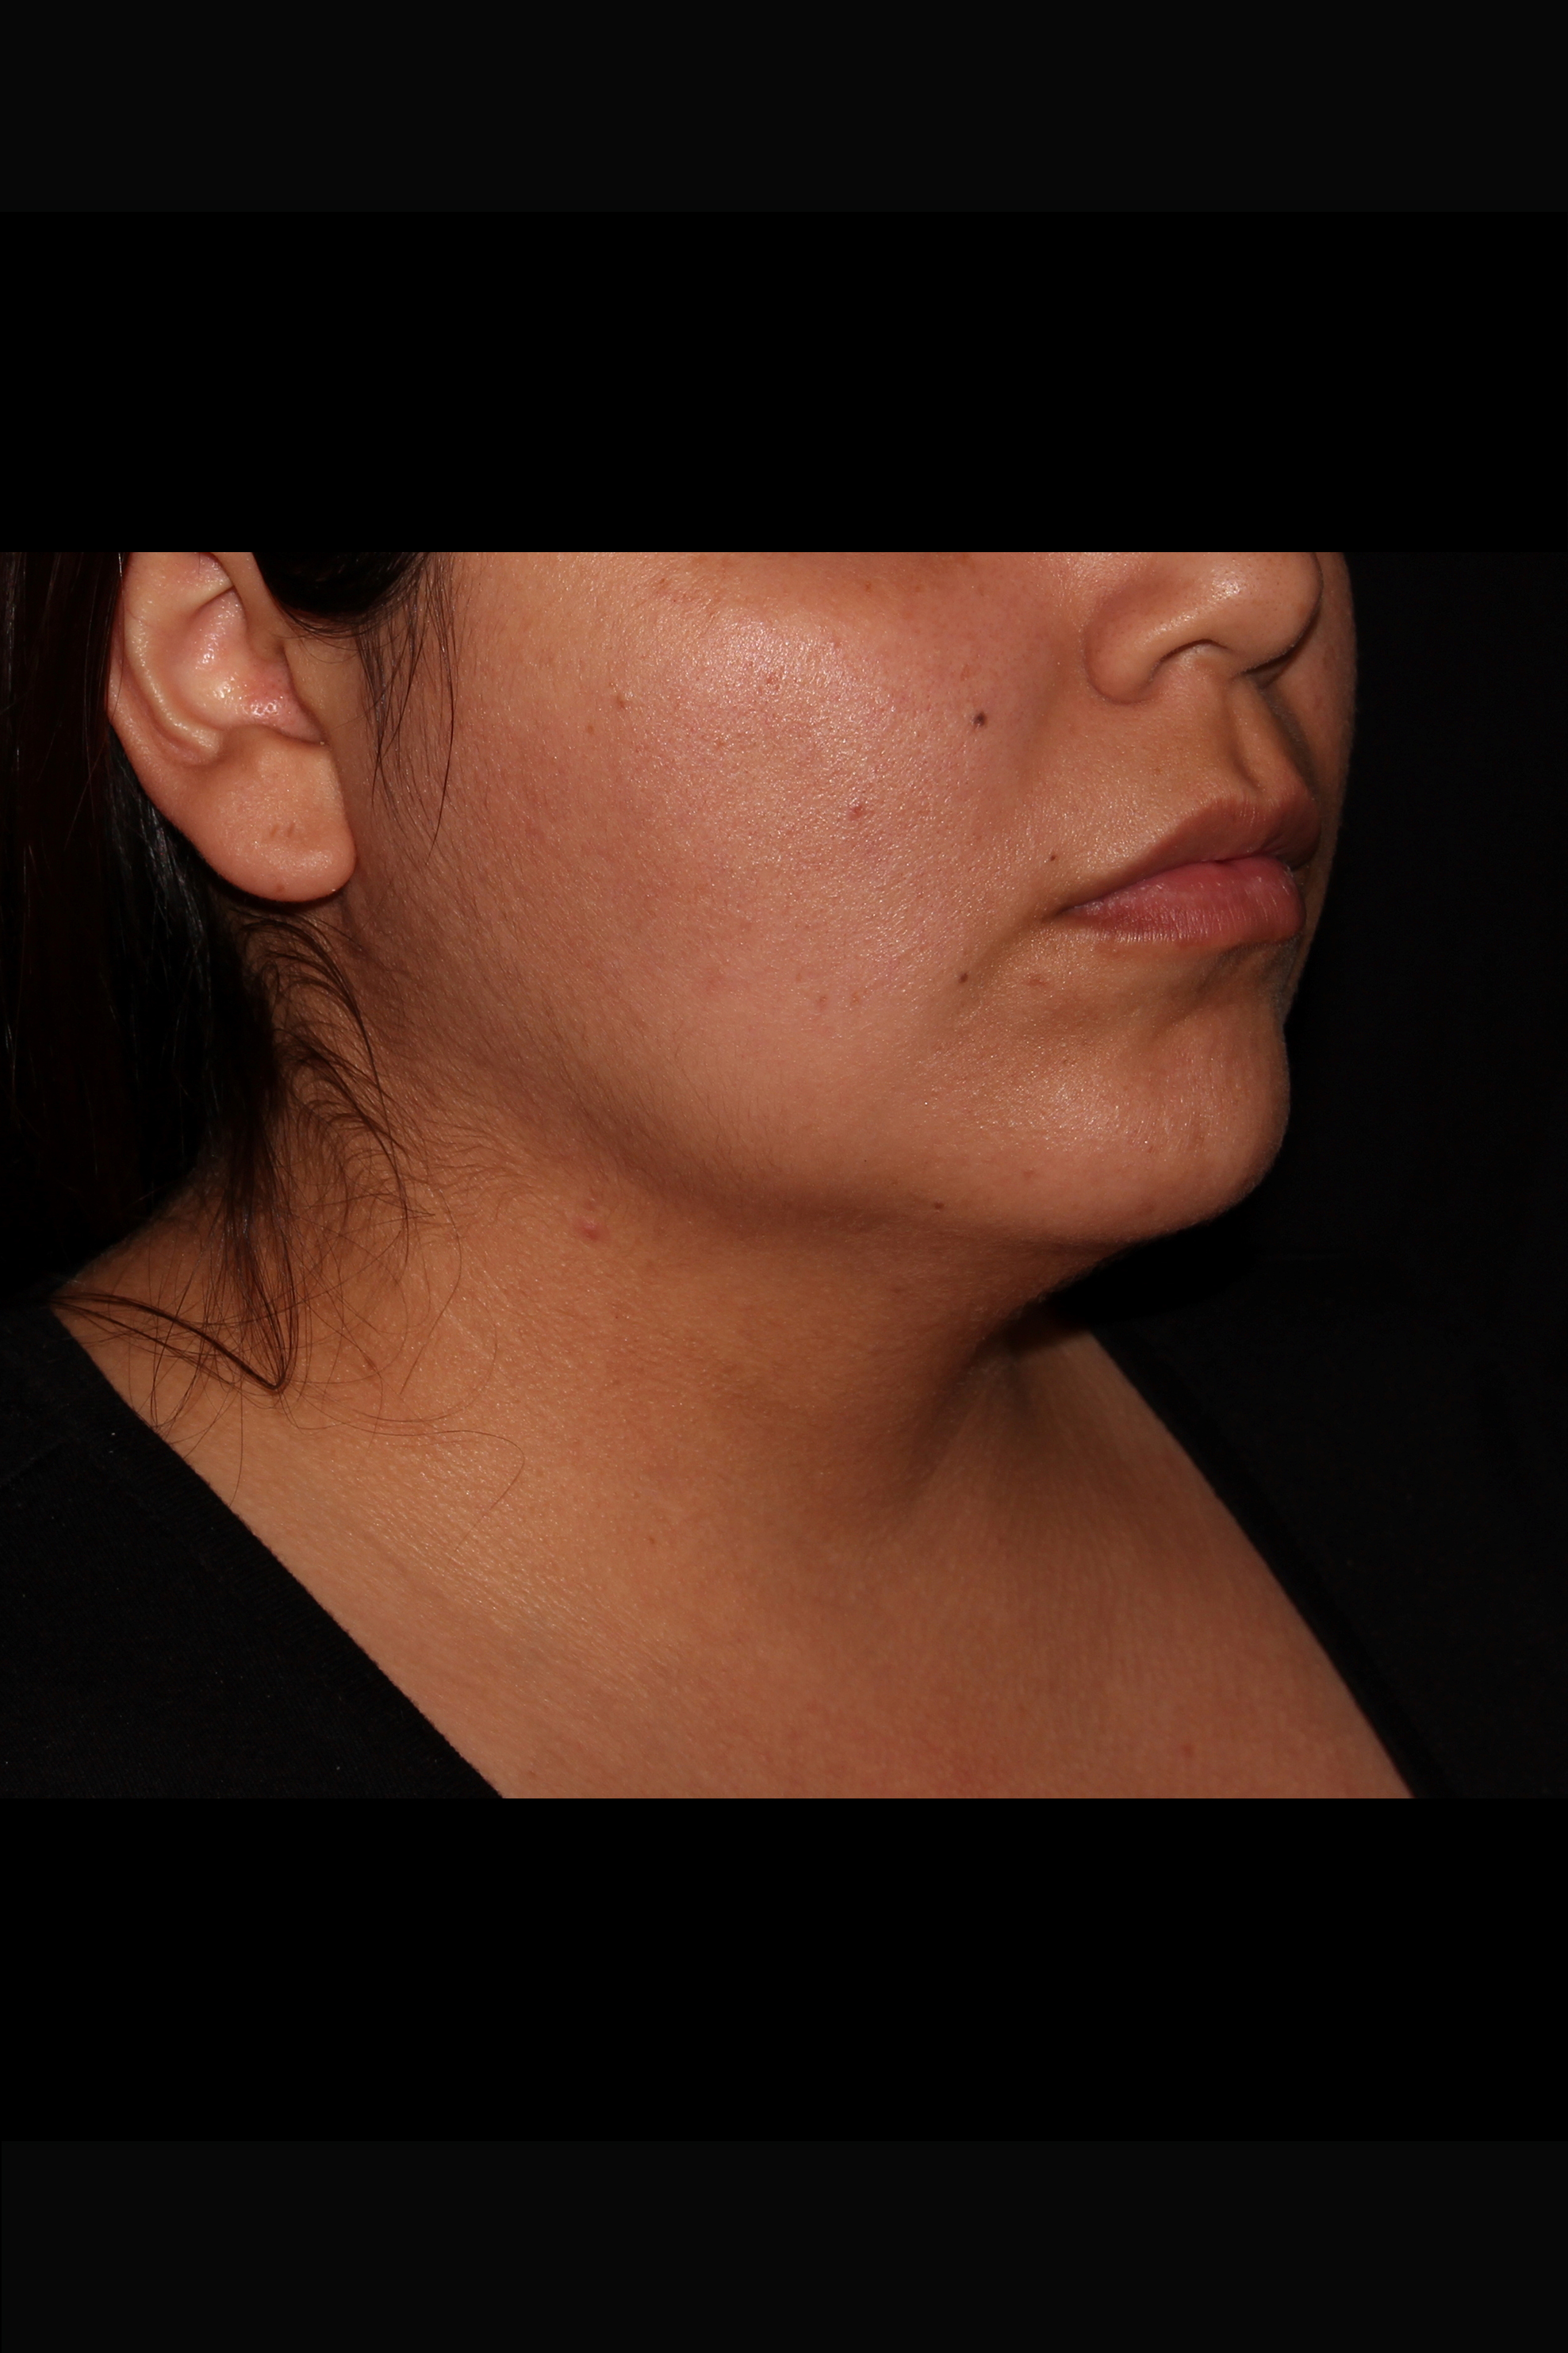 Before Neck Liposuction - Oblique